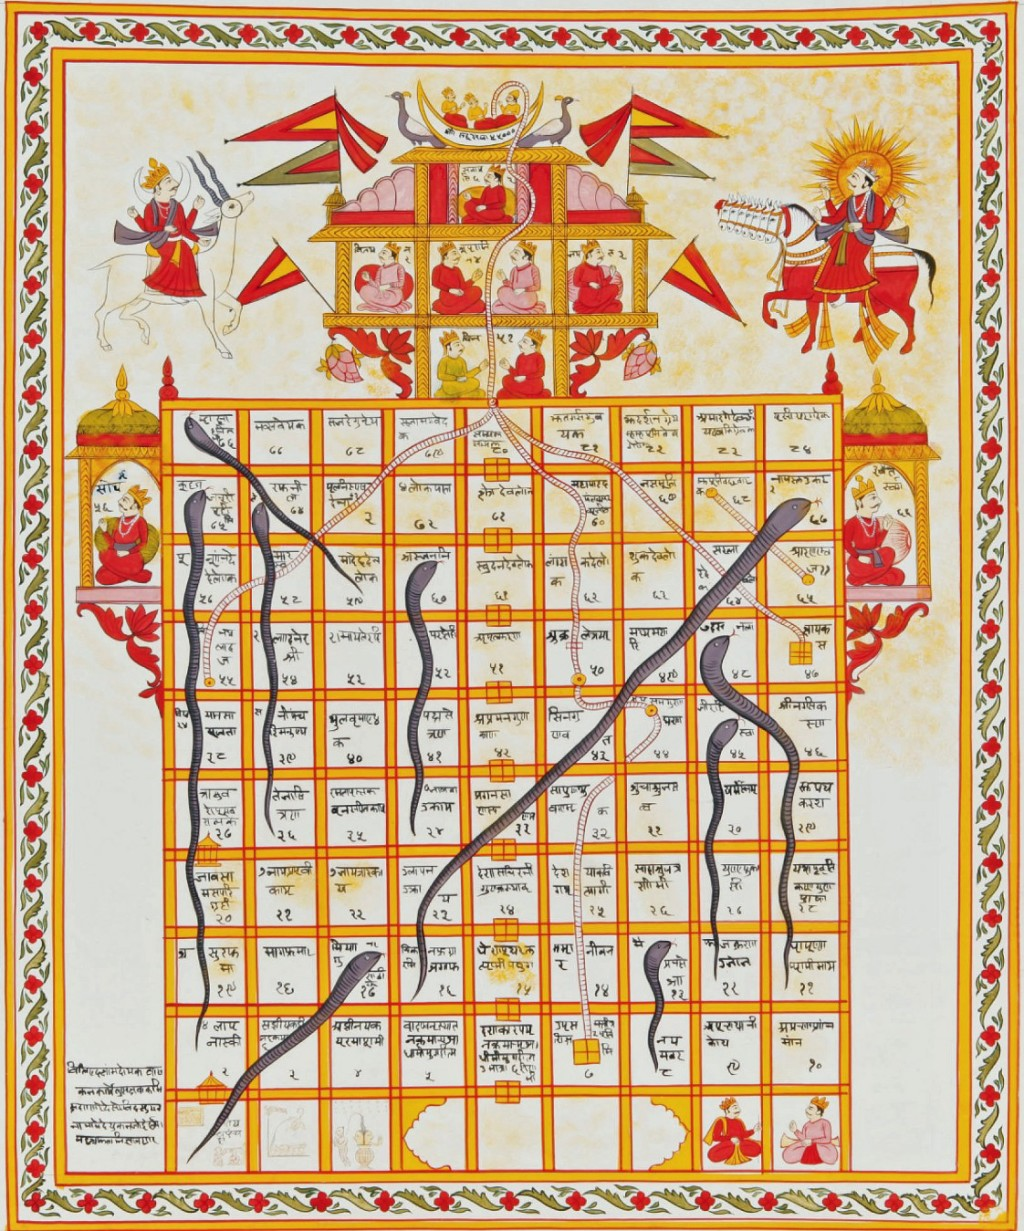 Jain version Game of Snakes & Ladders. Gouache on cloth, India, 19th century